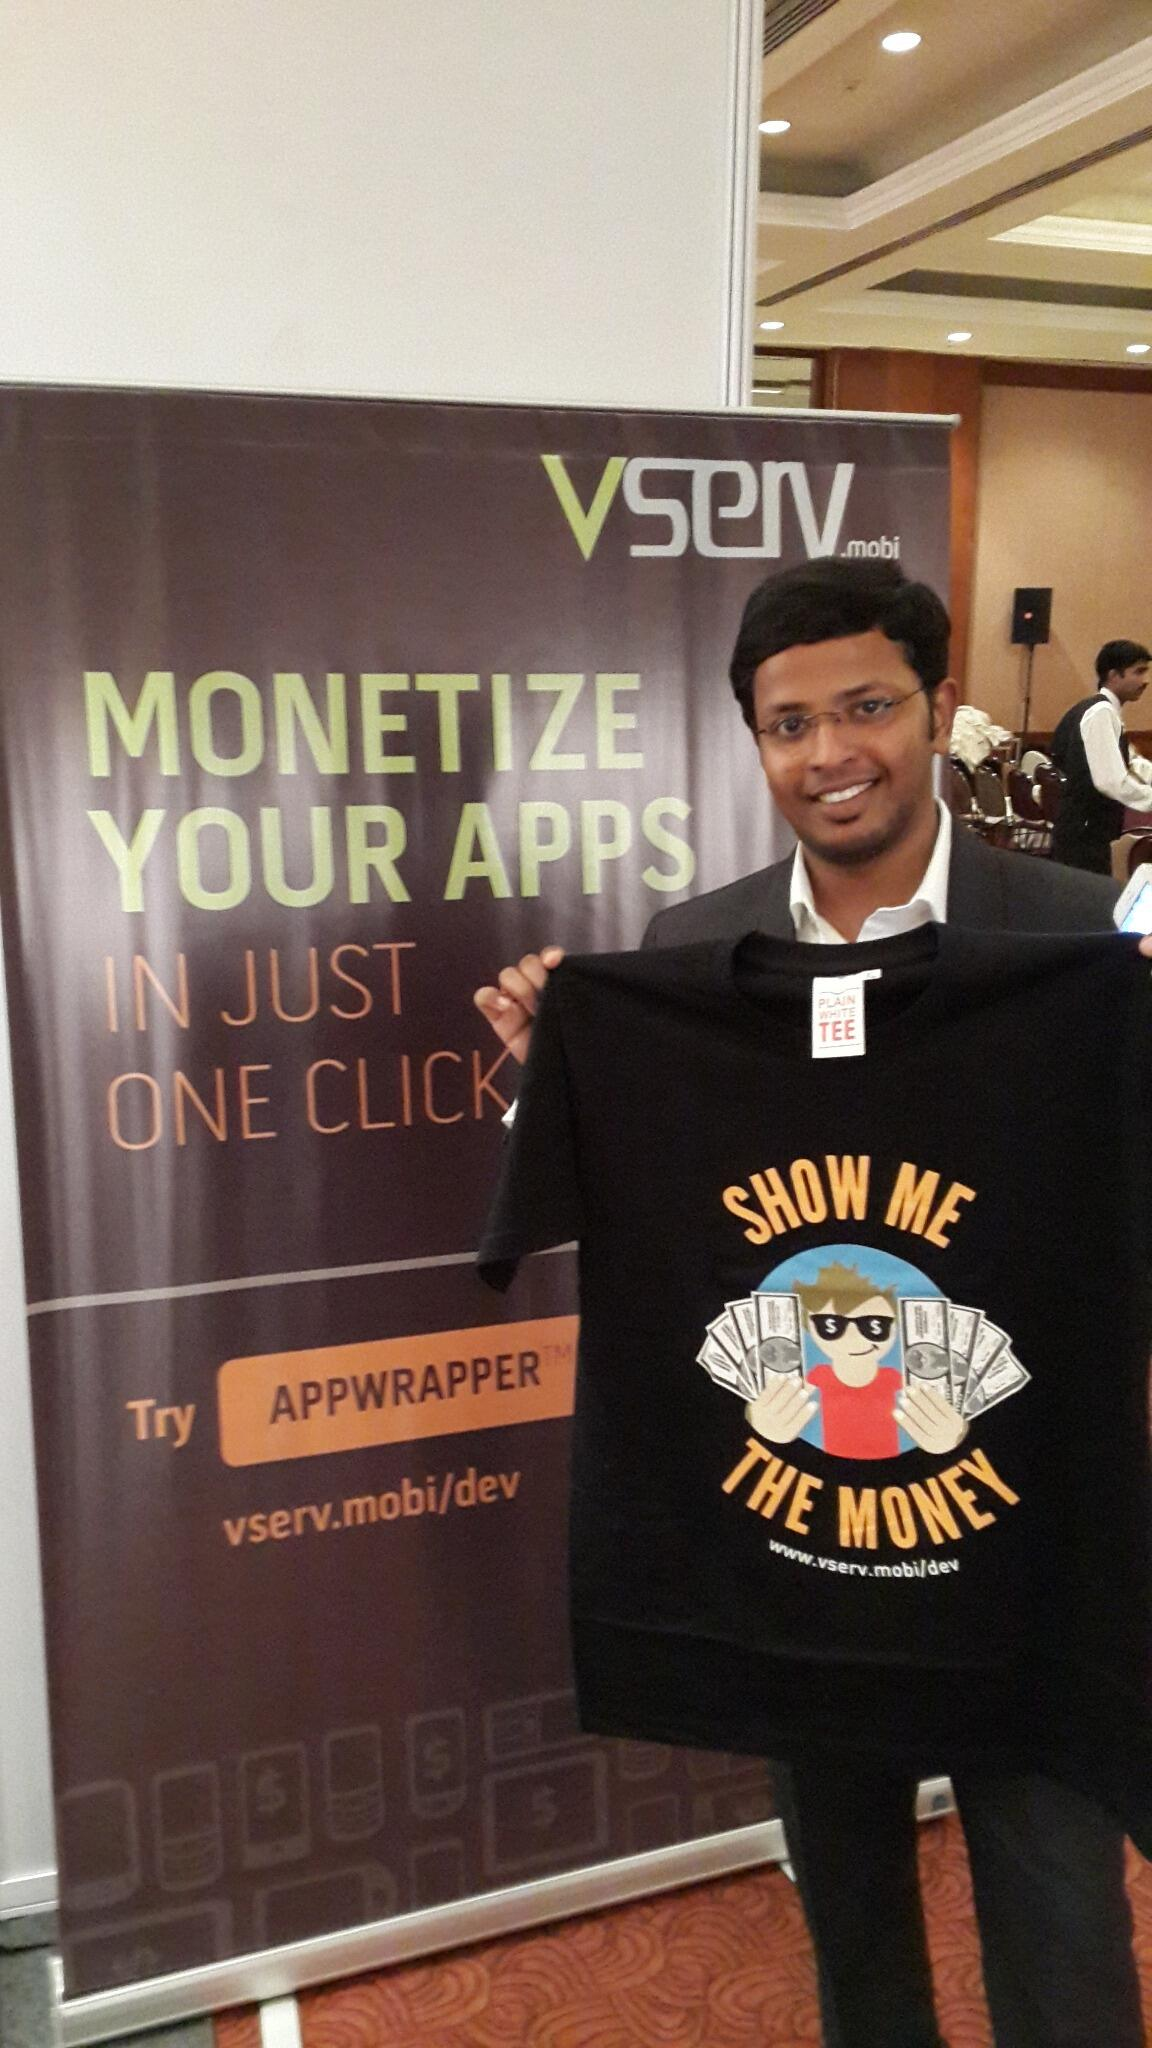 RT @VservMobi: Here's @anandish at #mBillionth whose favorite app is @Olacabs :) Tweet & Win! http://t.co/hMBgezm3TU